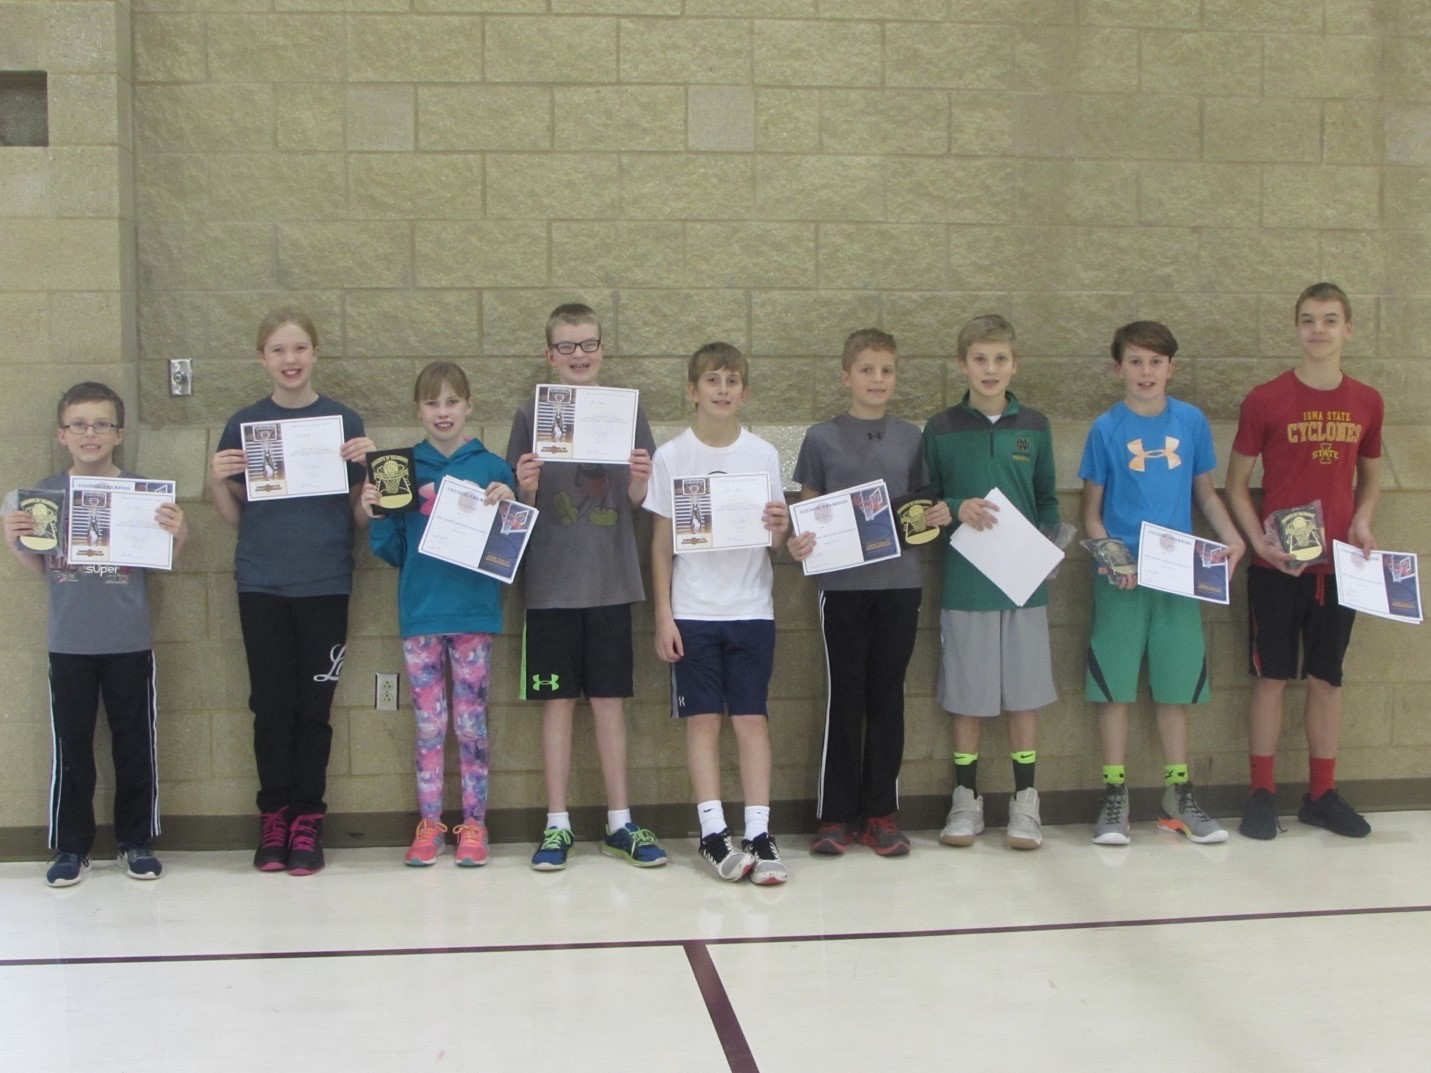 Participants in the Knights of Columbus 5038 free throw shoot at OLIH in Ankeny; L to R: Cael Faber, Emily Buckley, Hannah Howard, Ben Steemken, Cole Pieper,Ethan Bovee, Tyson Meiners, Zach Steemken, Ryan Allen. Winners will move on to district competition Sat, Jan 28 at St. Lukes in Ankeny